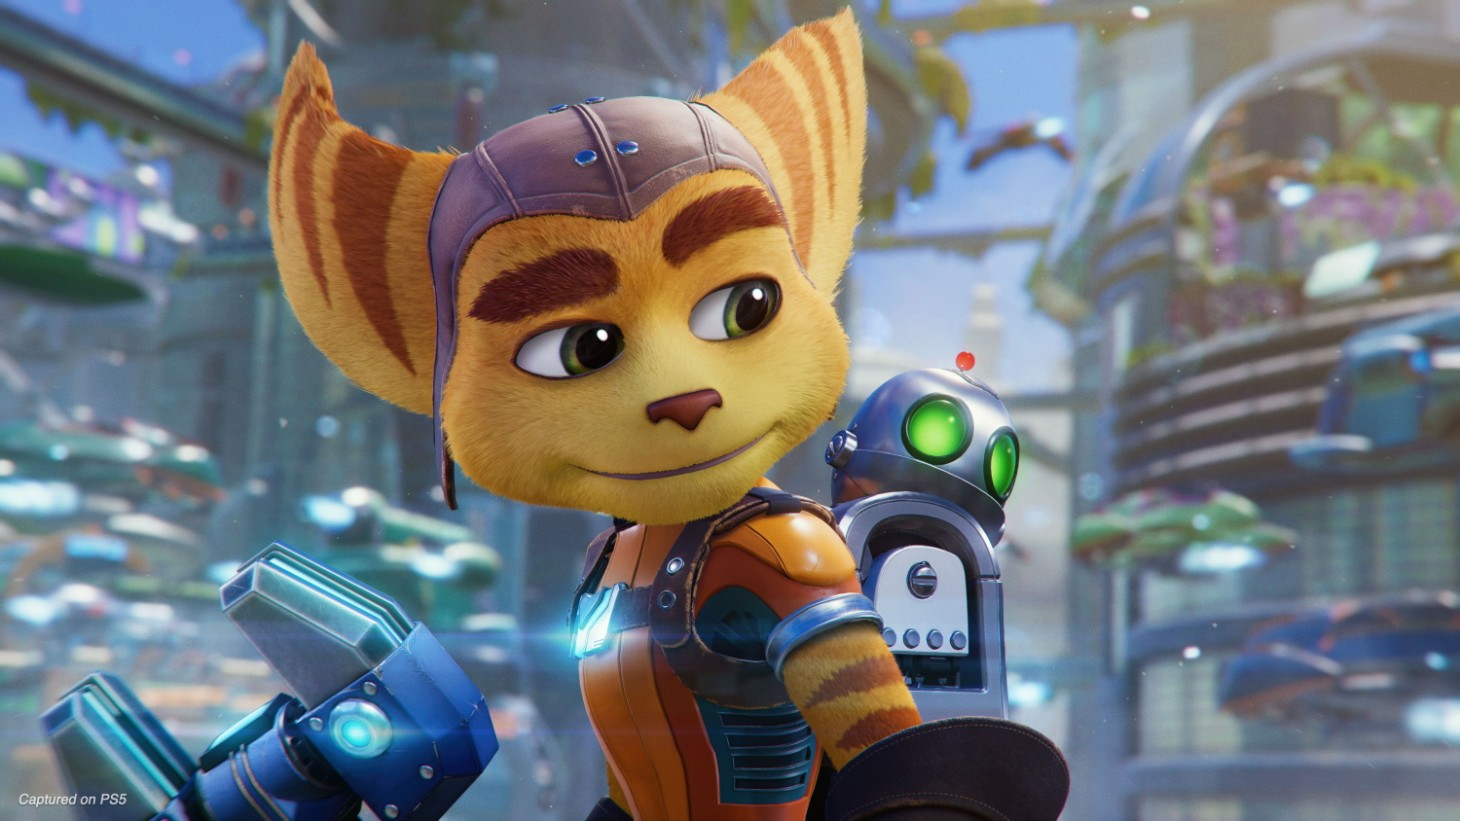 Insomniac Announces Ratchet Clank Rift Apart For Playstation 5